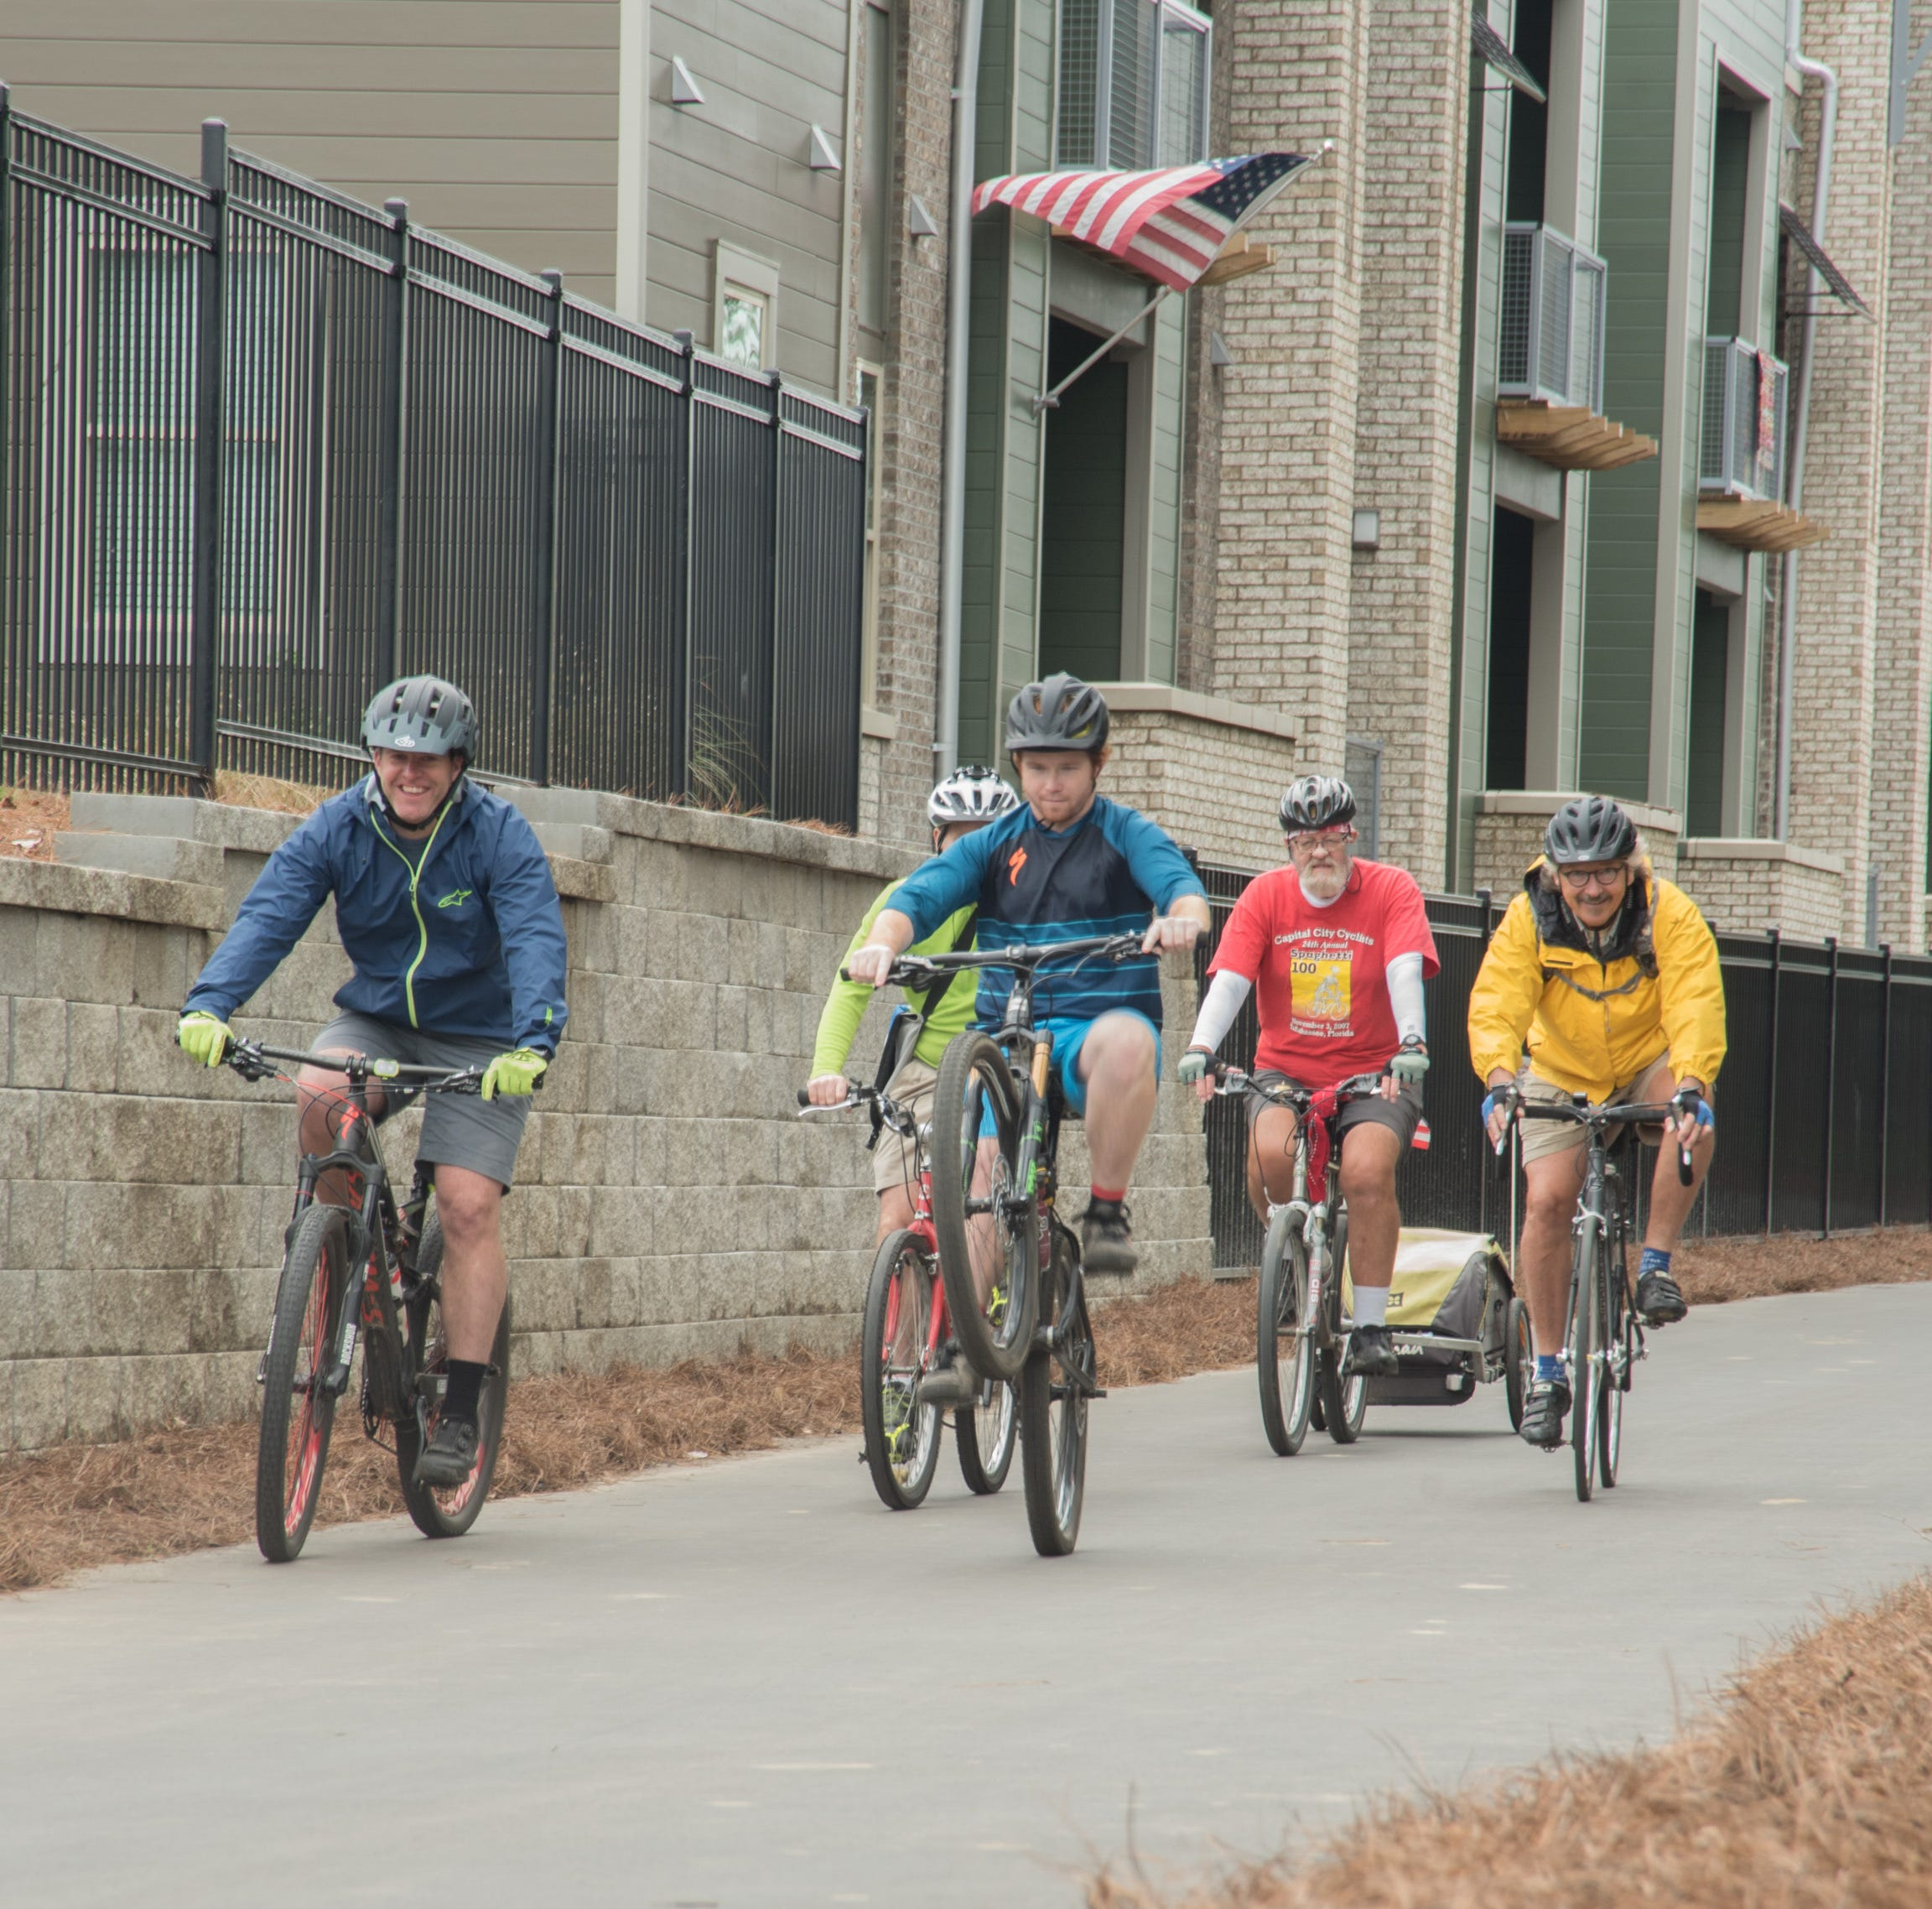 The St. Marks Trail extension opened at Stadium Enclave offering students and residents access to a safe bike and walk lane.